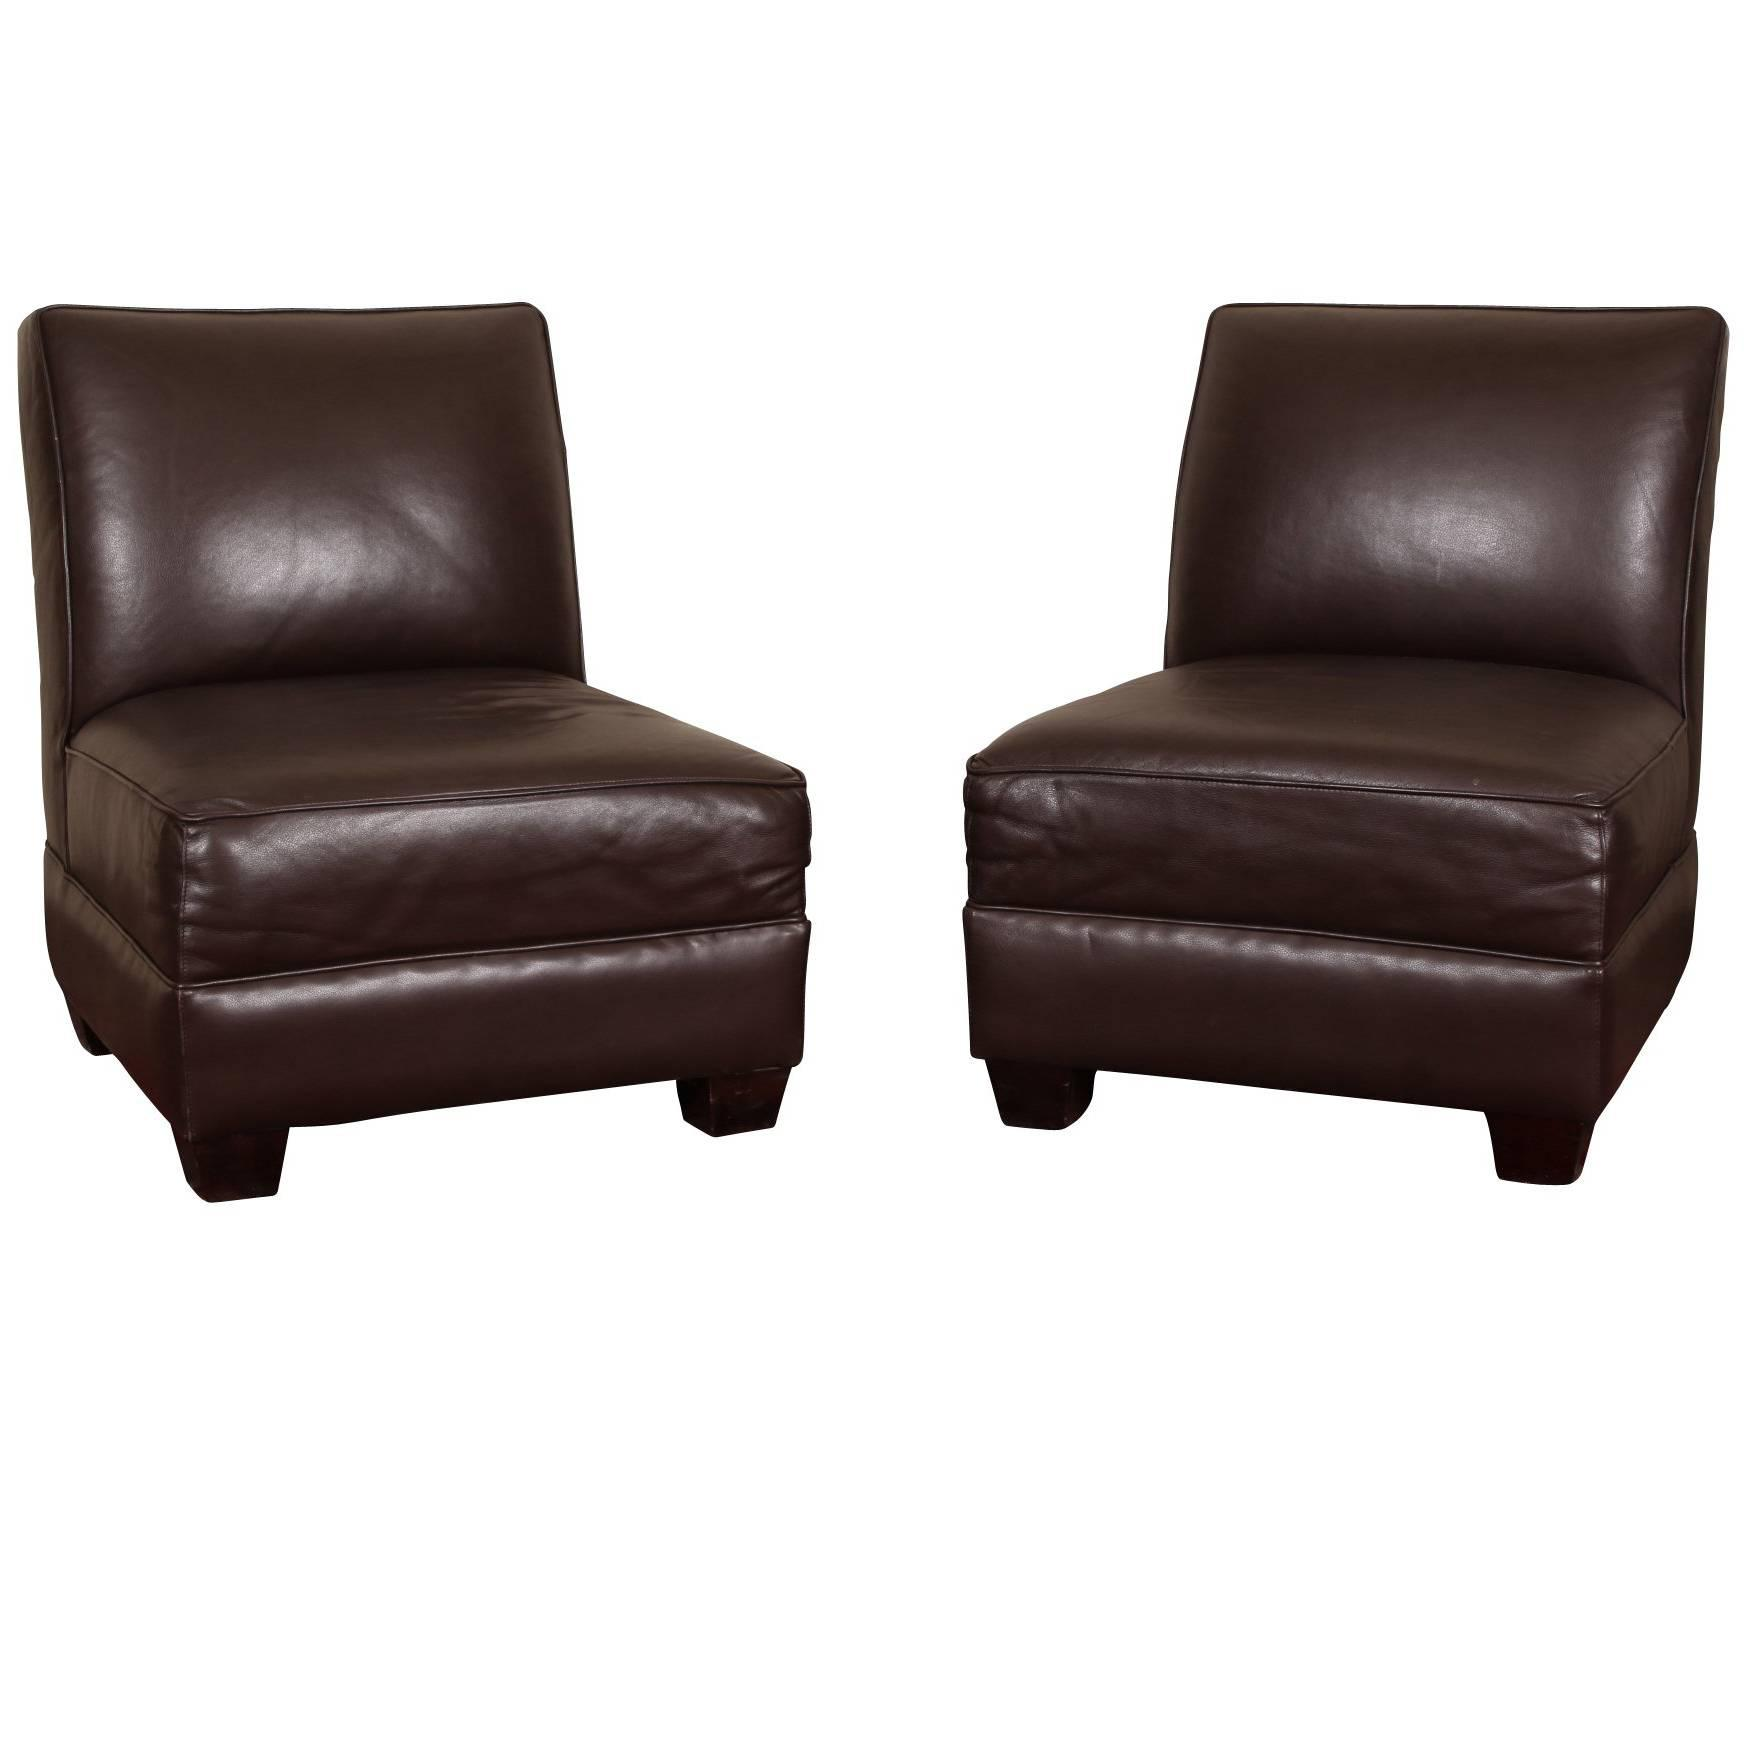 Pair of Chocolate Brown Leather Slipper Chairs For Sale